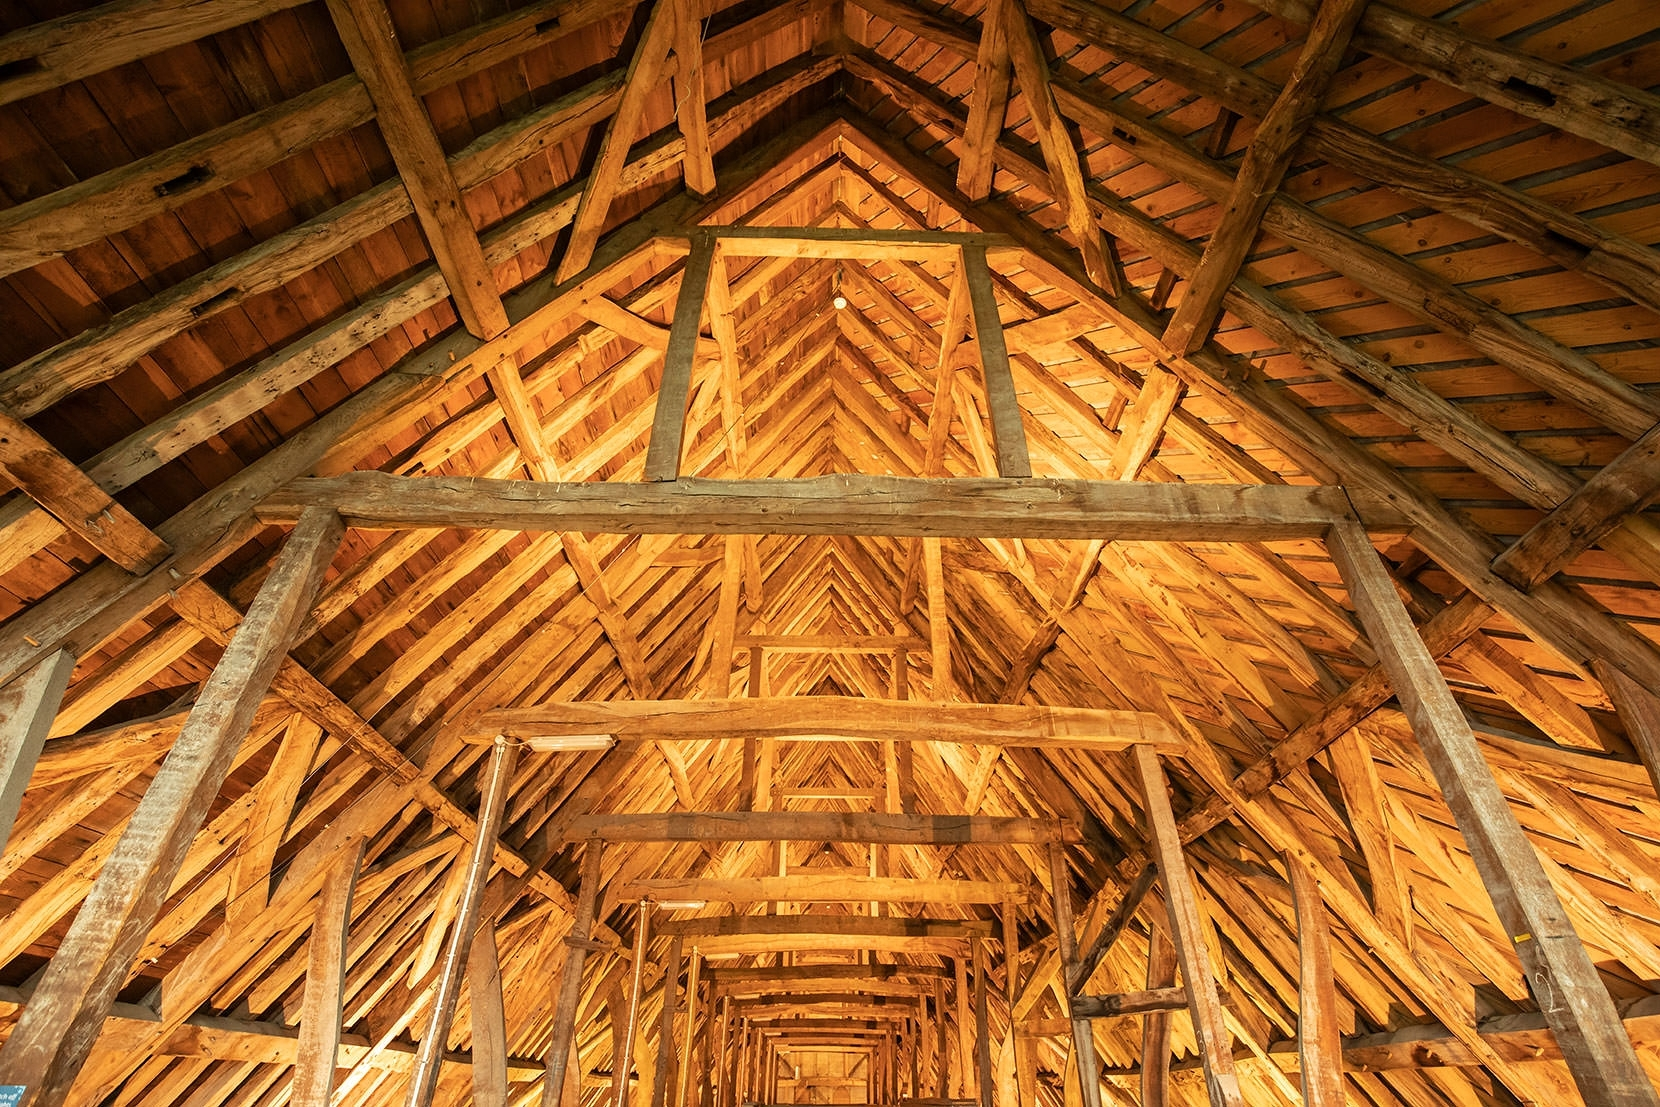 The roof space above the nave is literally an historic timber frame museum.